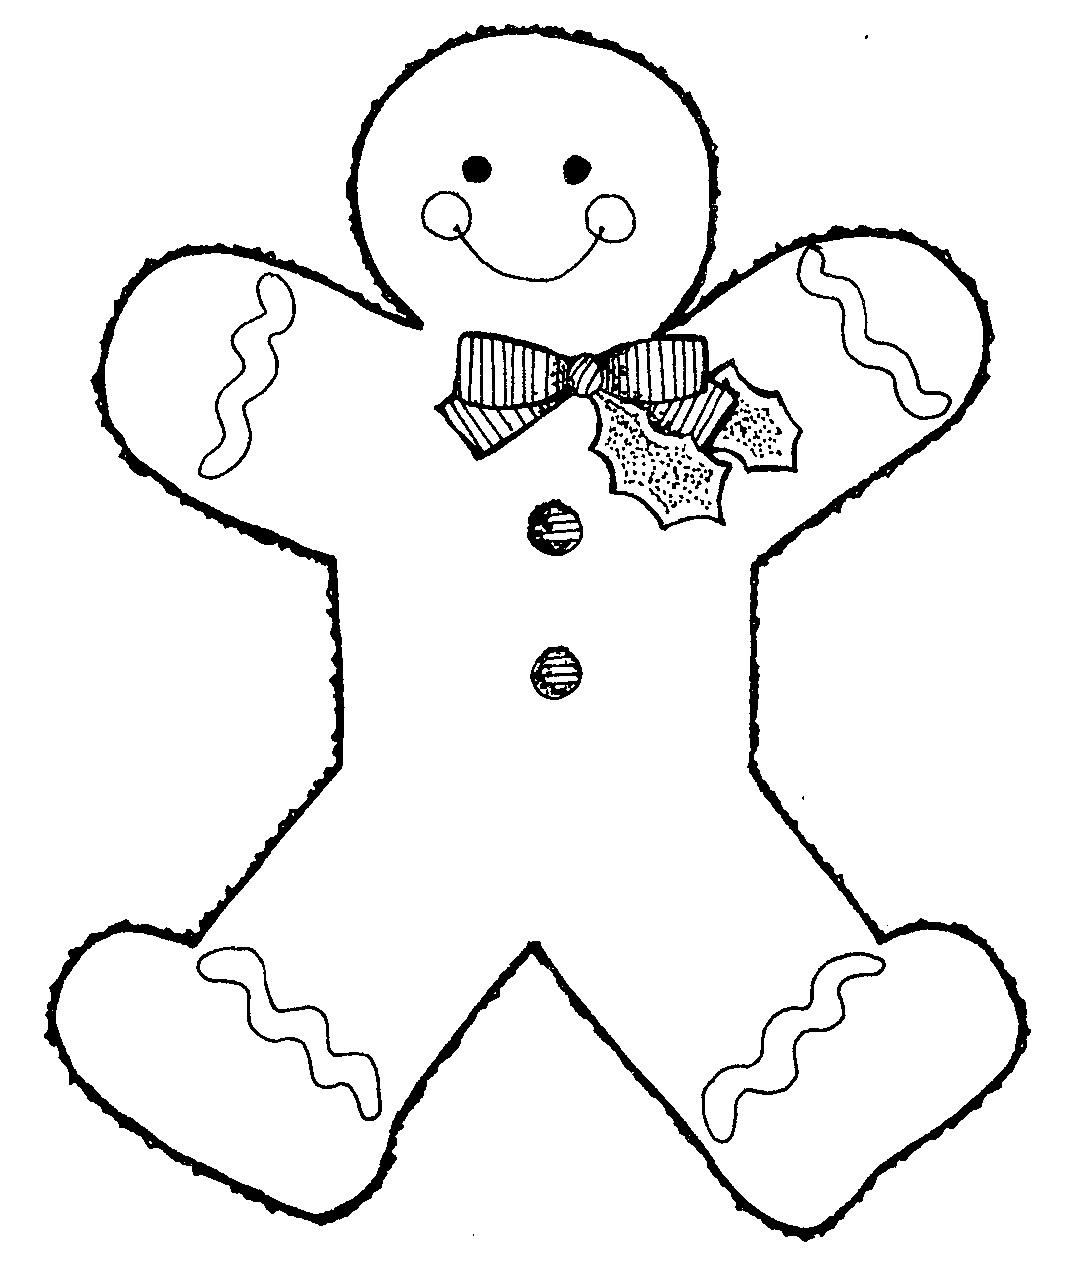 1072x1281 Gingerbread Man Black And White Clipart Kid 2